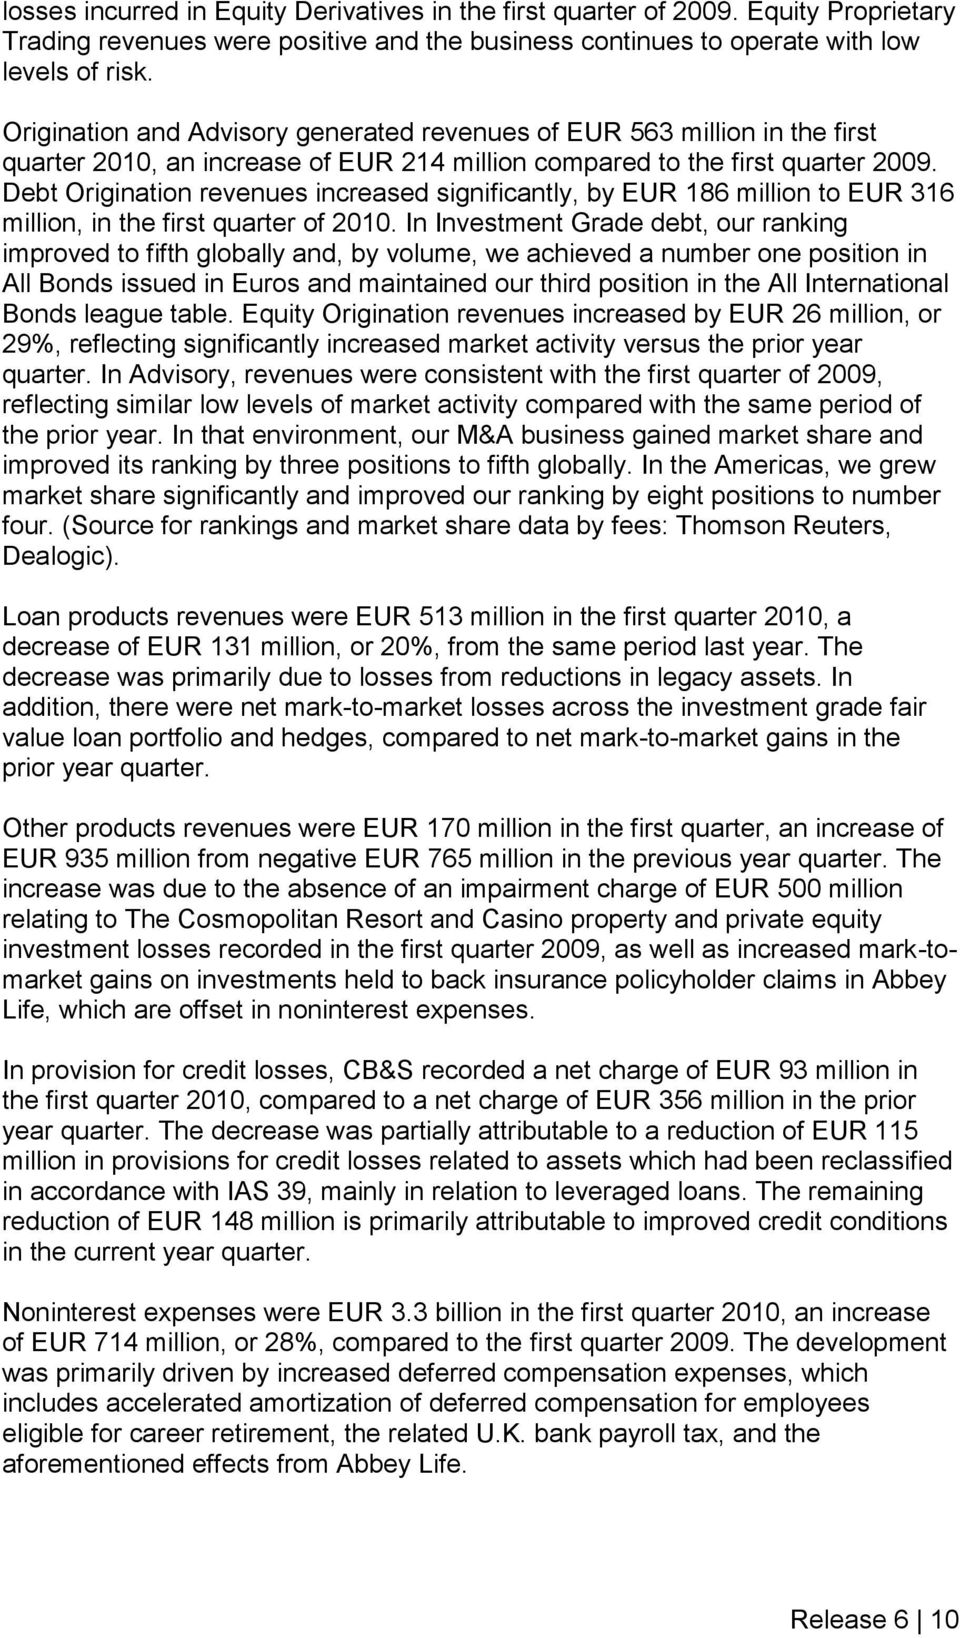 Debt Origination revenues increased significantly, by EUR 186 million to EUR 316 million, in the first quarter of 2010.